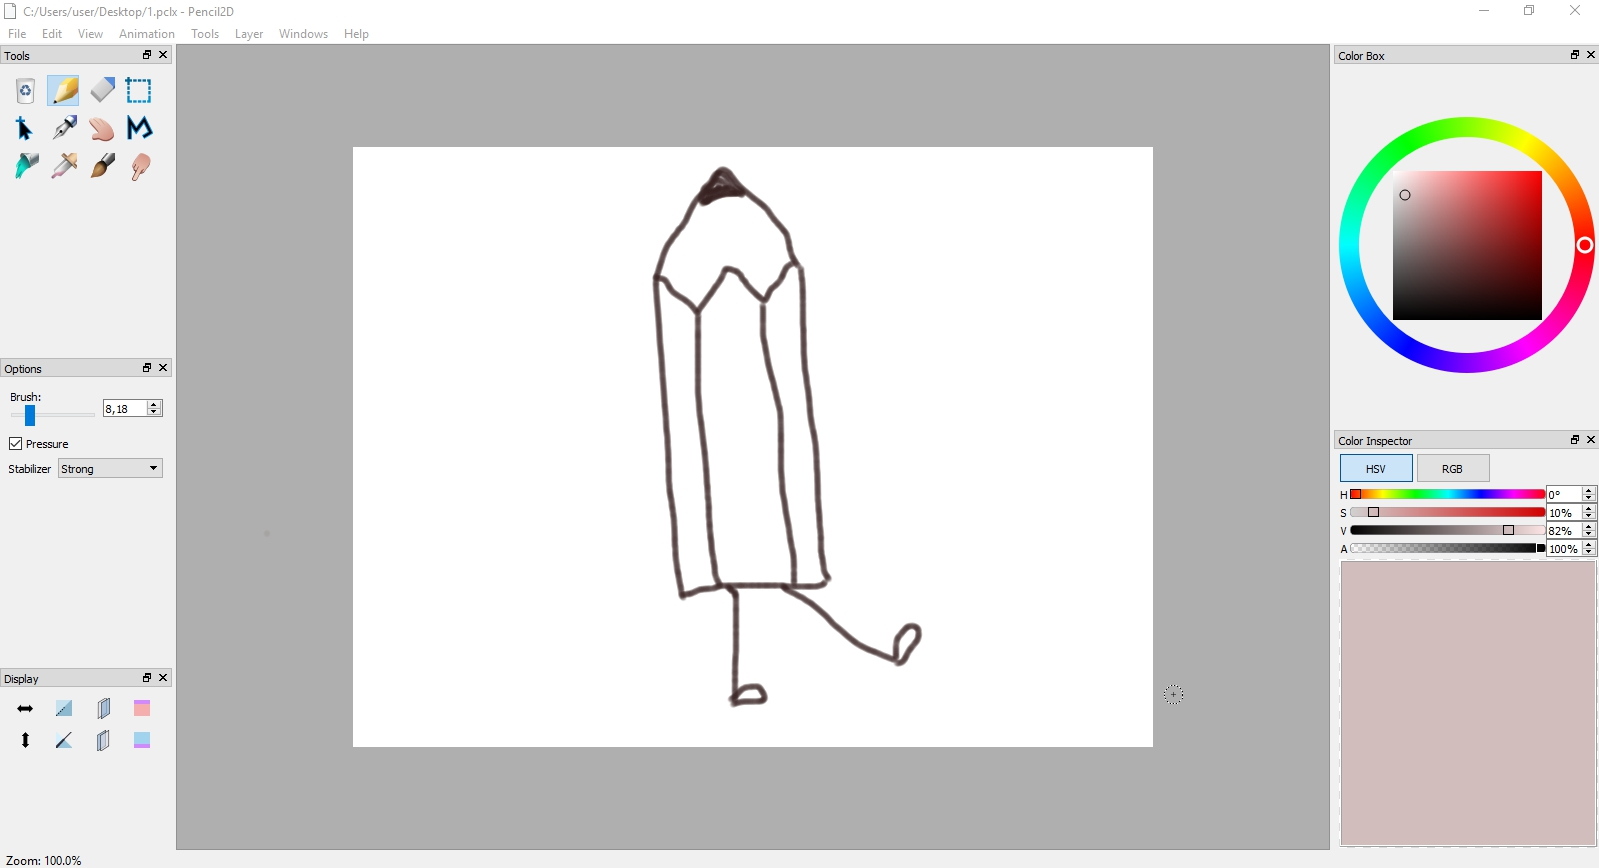 Interface of the Pencil software for 2D animation